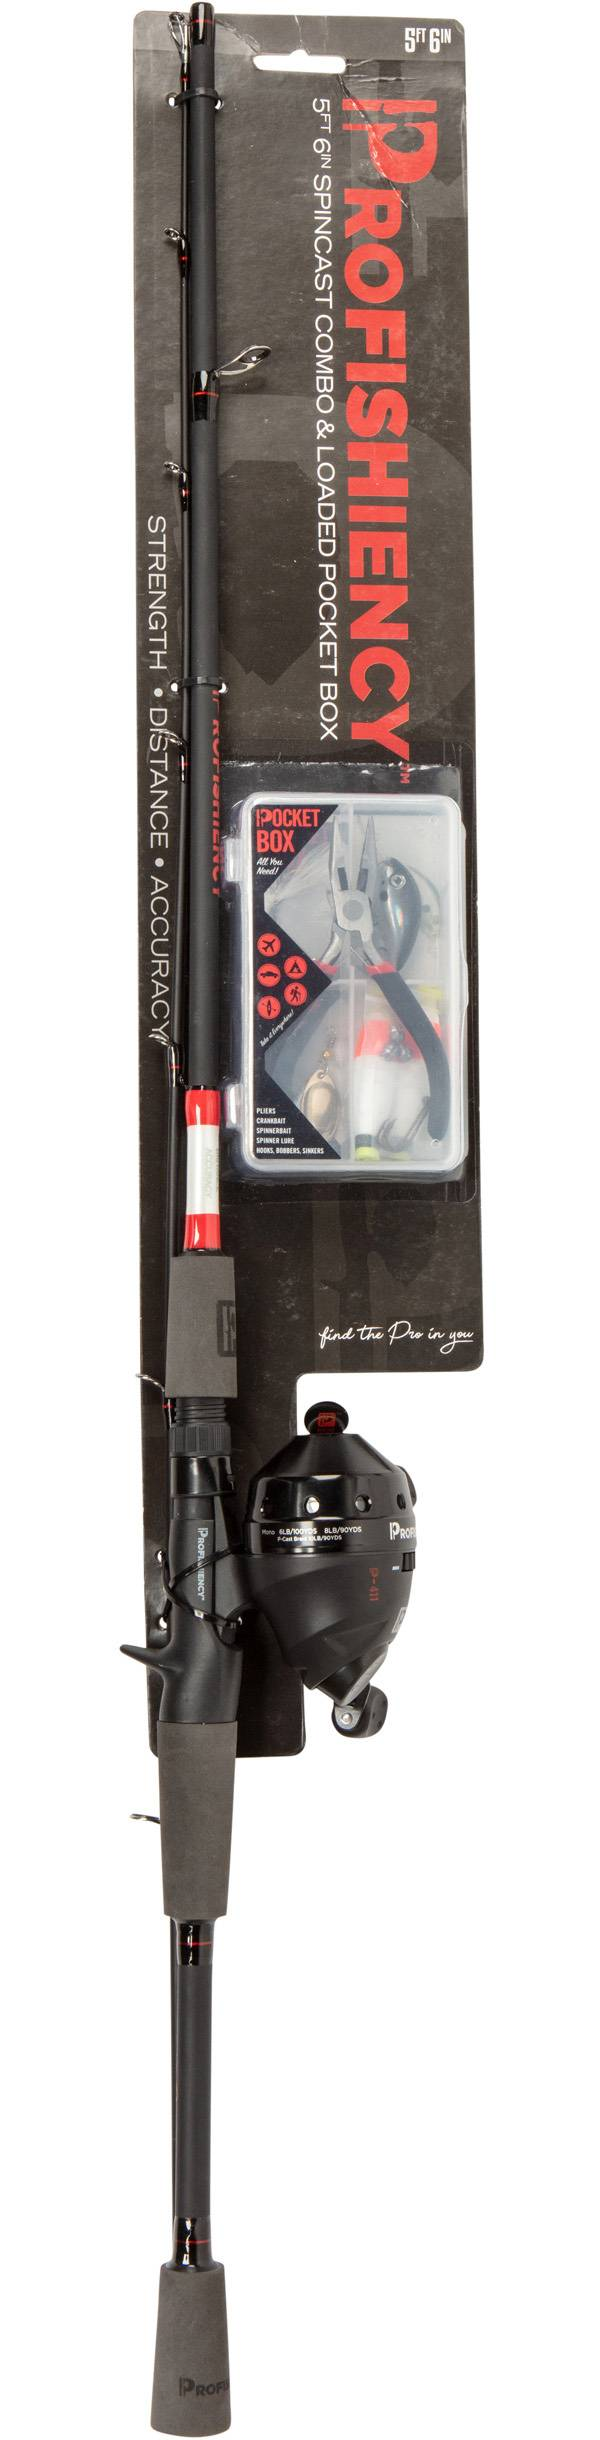 Lil' Anglers Profishiency Youth Spincast Combo product image